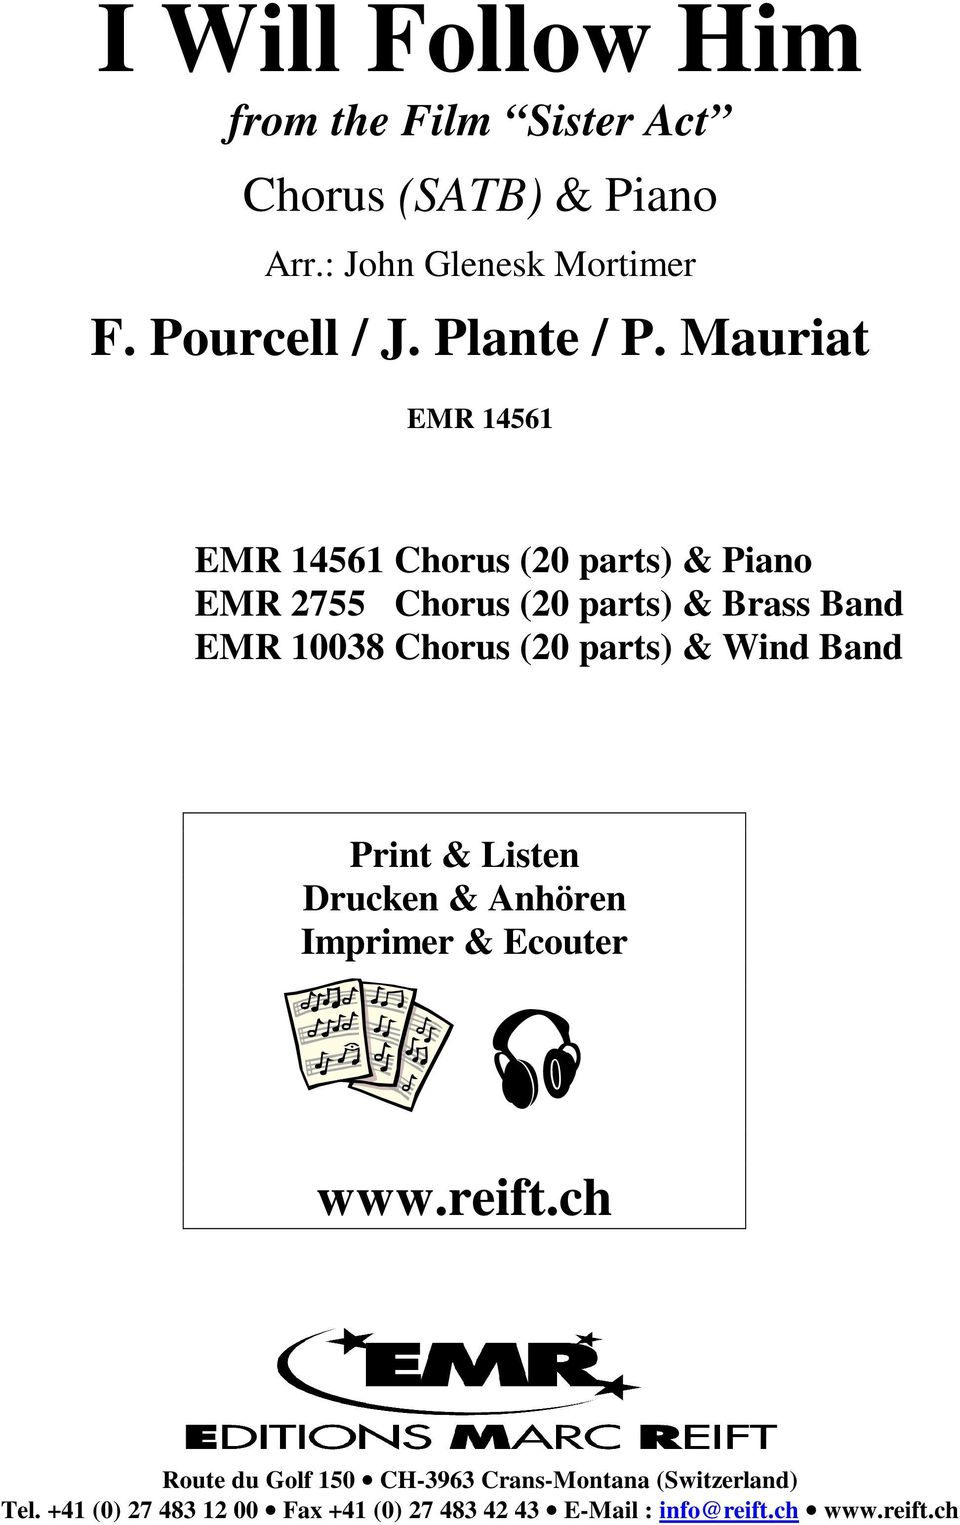 Mauriat Chorus (20 arts) & Piano EMR 2755 Chorus (20 arts) & Brass Band EMR 1008 Chorus (20 arts) &